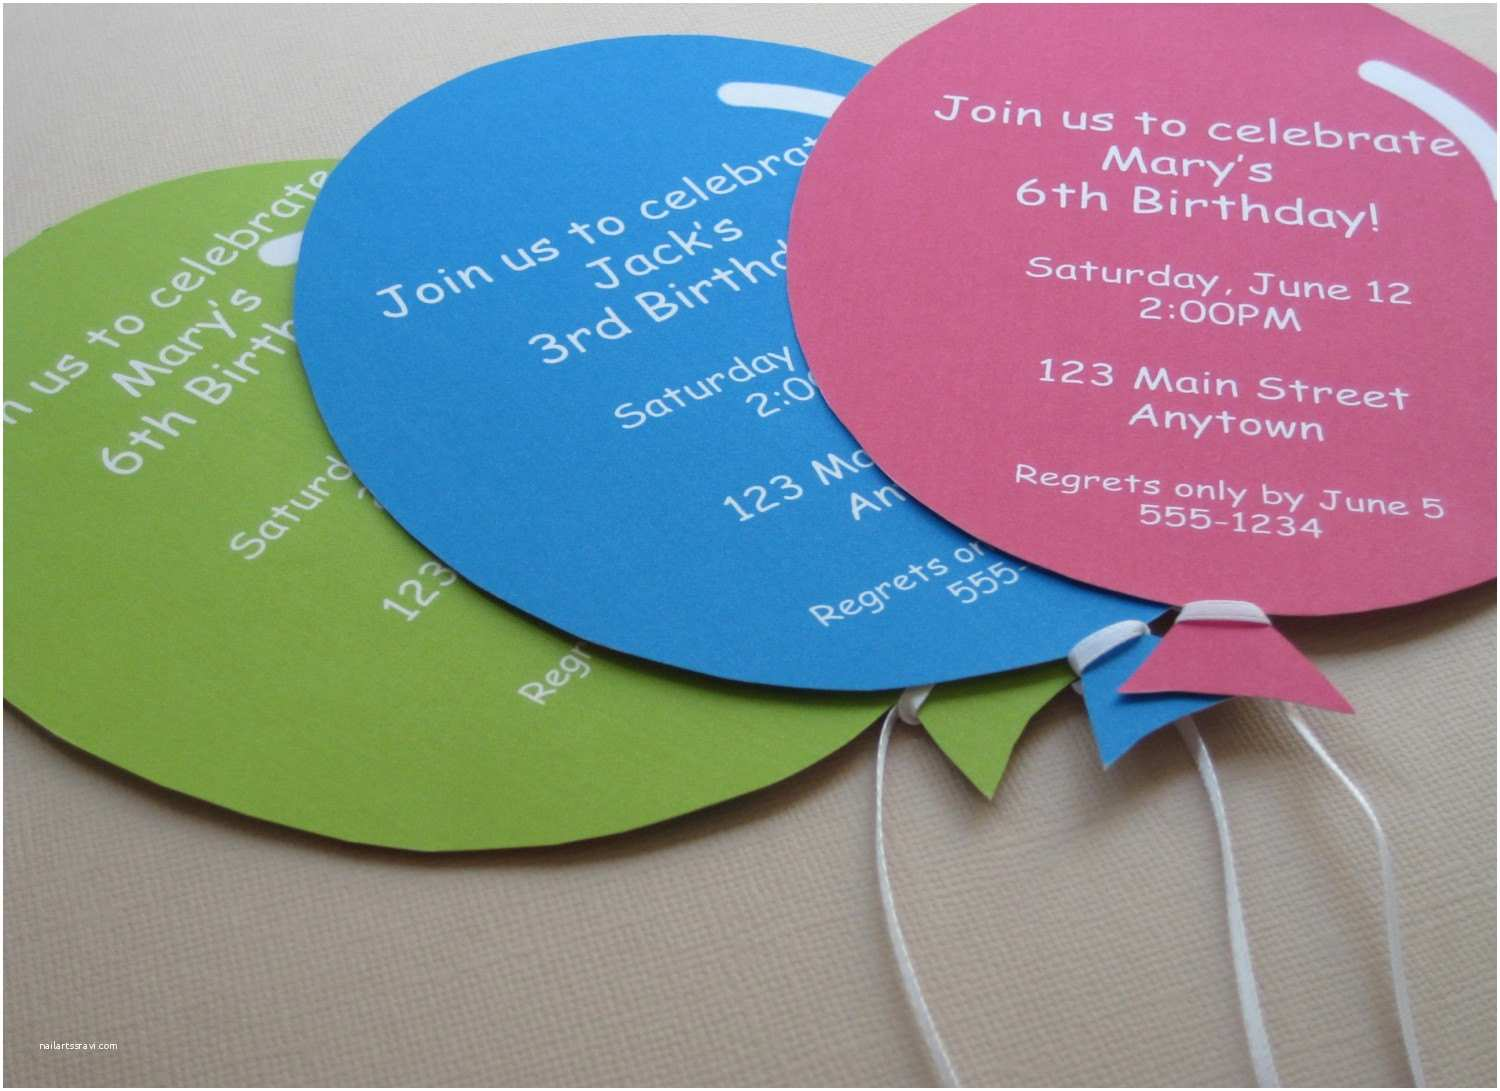 Personalized Party Invitations Personalized Balloon Party Invitations by Teapartydesigns